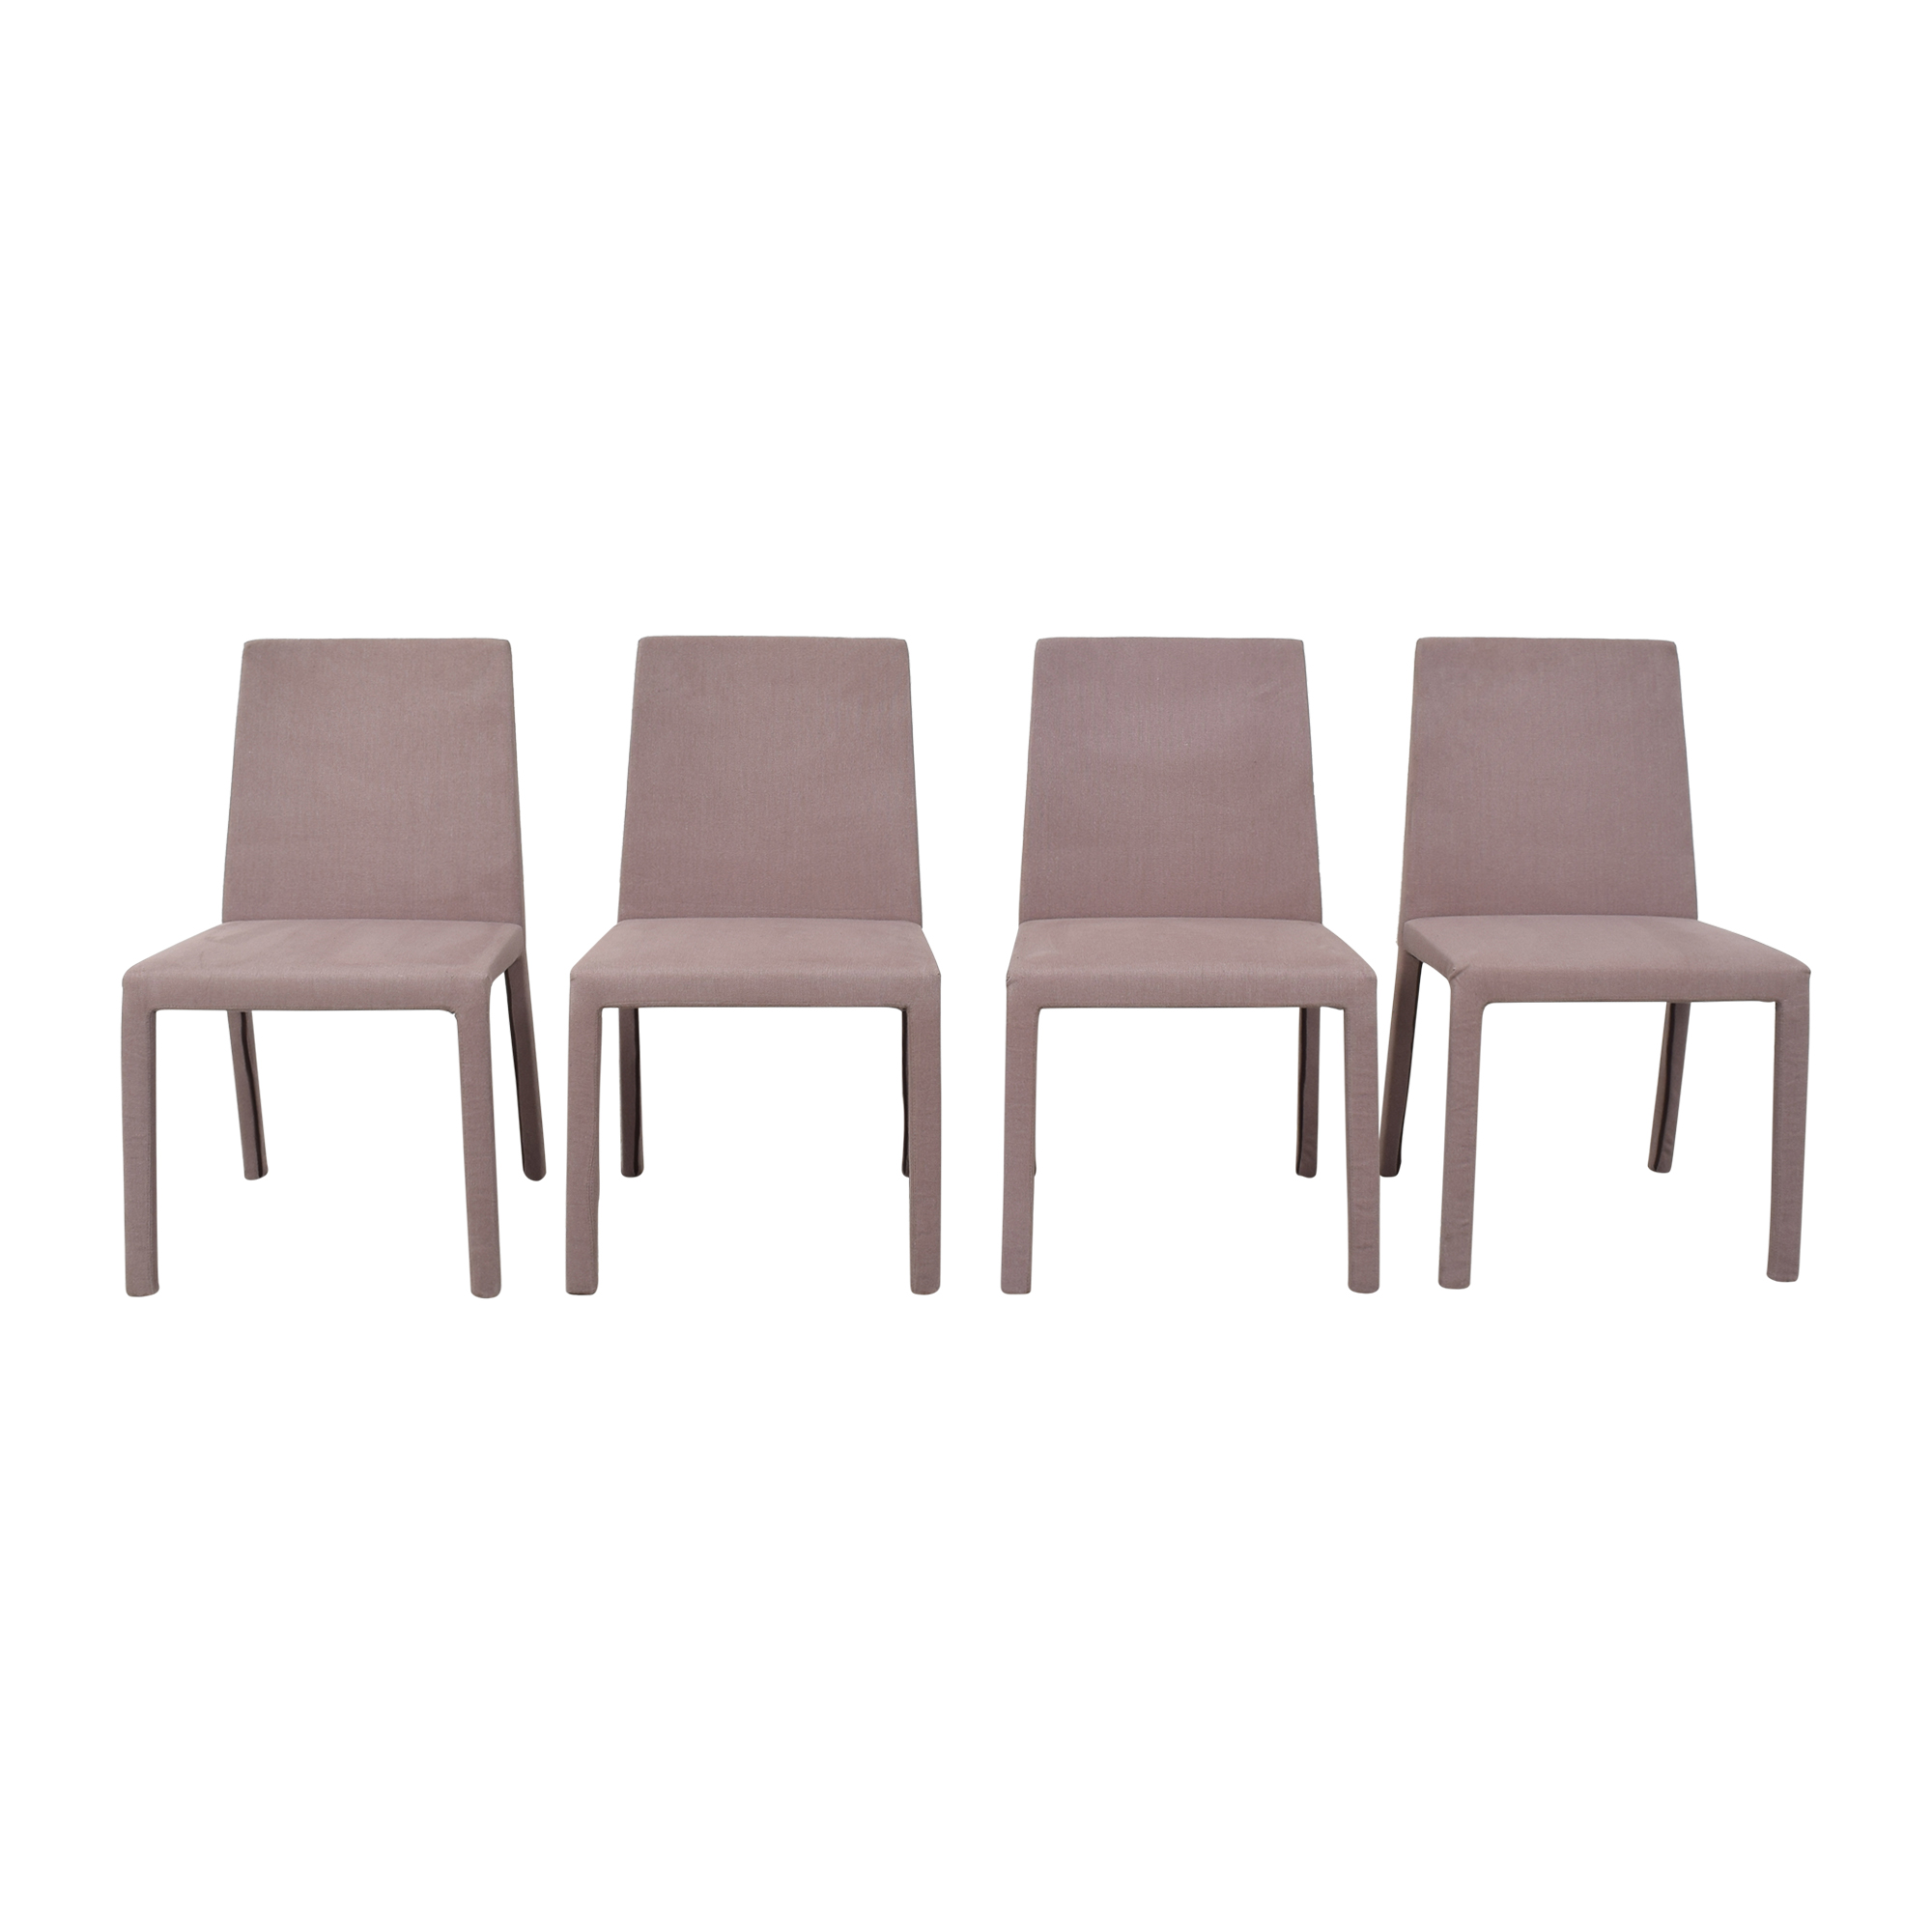 Poliform Poliform Fly Tre Dining Chairs for sale